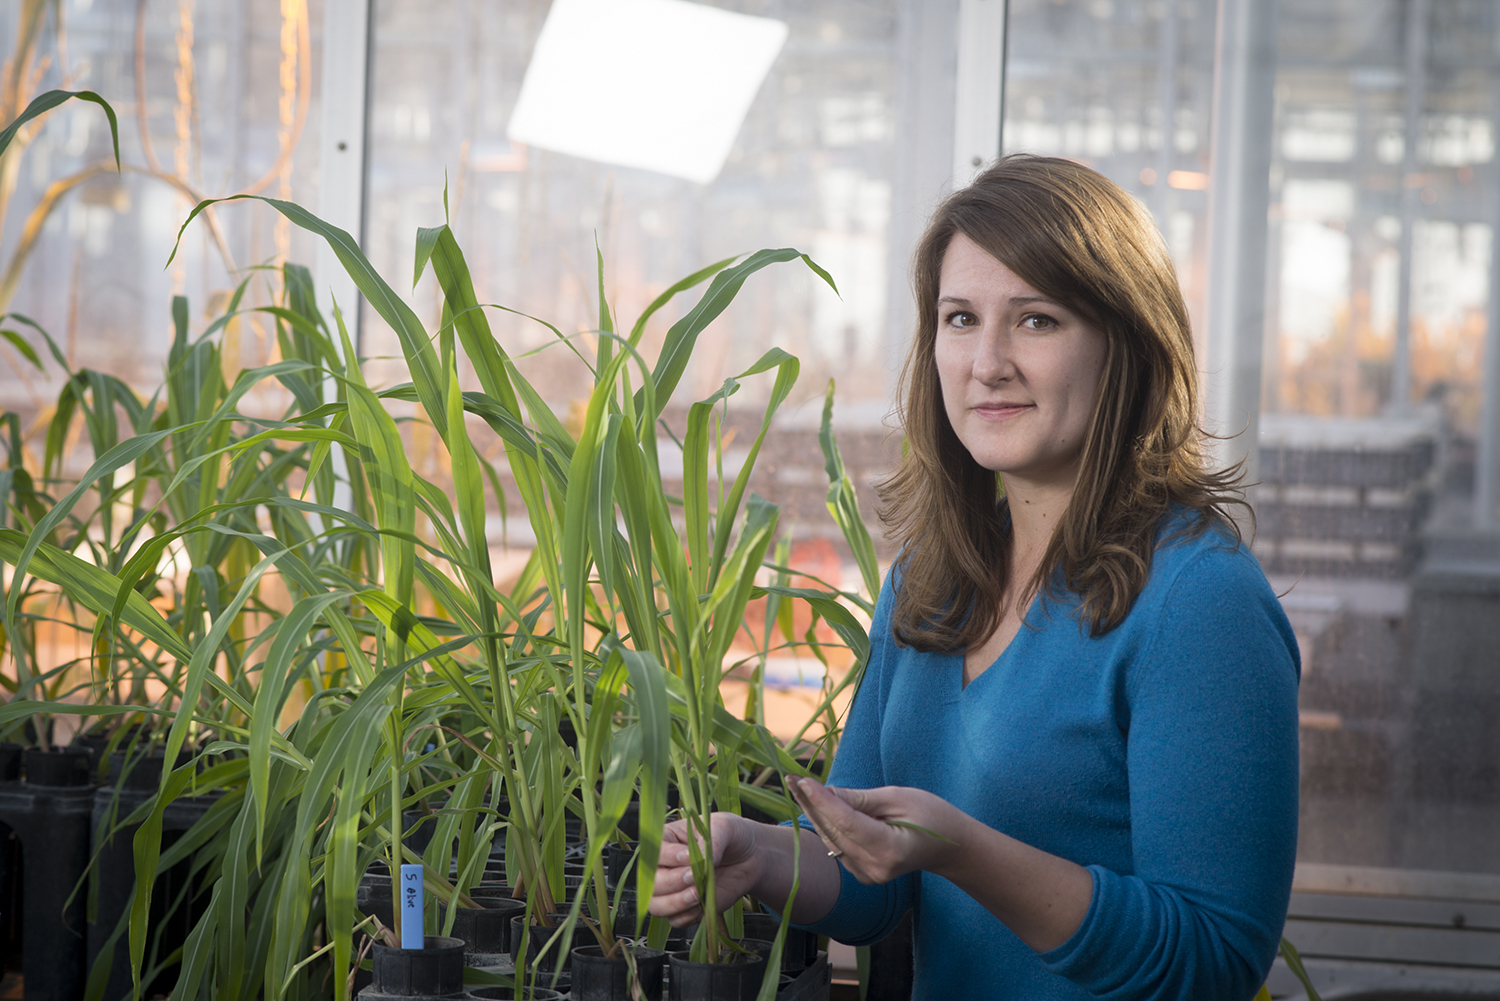 Fig. 1. Dr. Kiersten Wise is an Extension Plant Pathologist with responsibilities in field crops at the University of Kentucky.